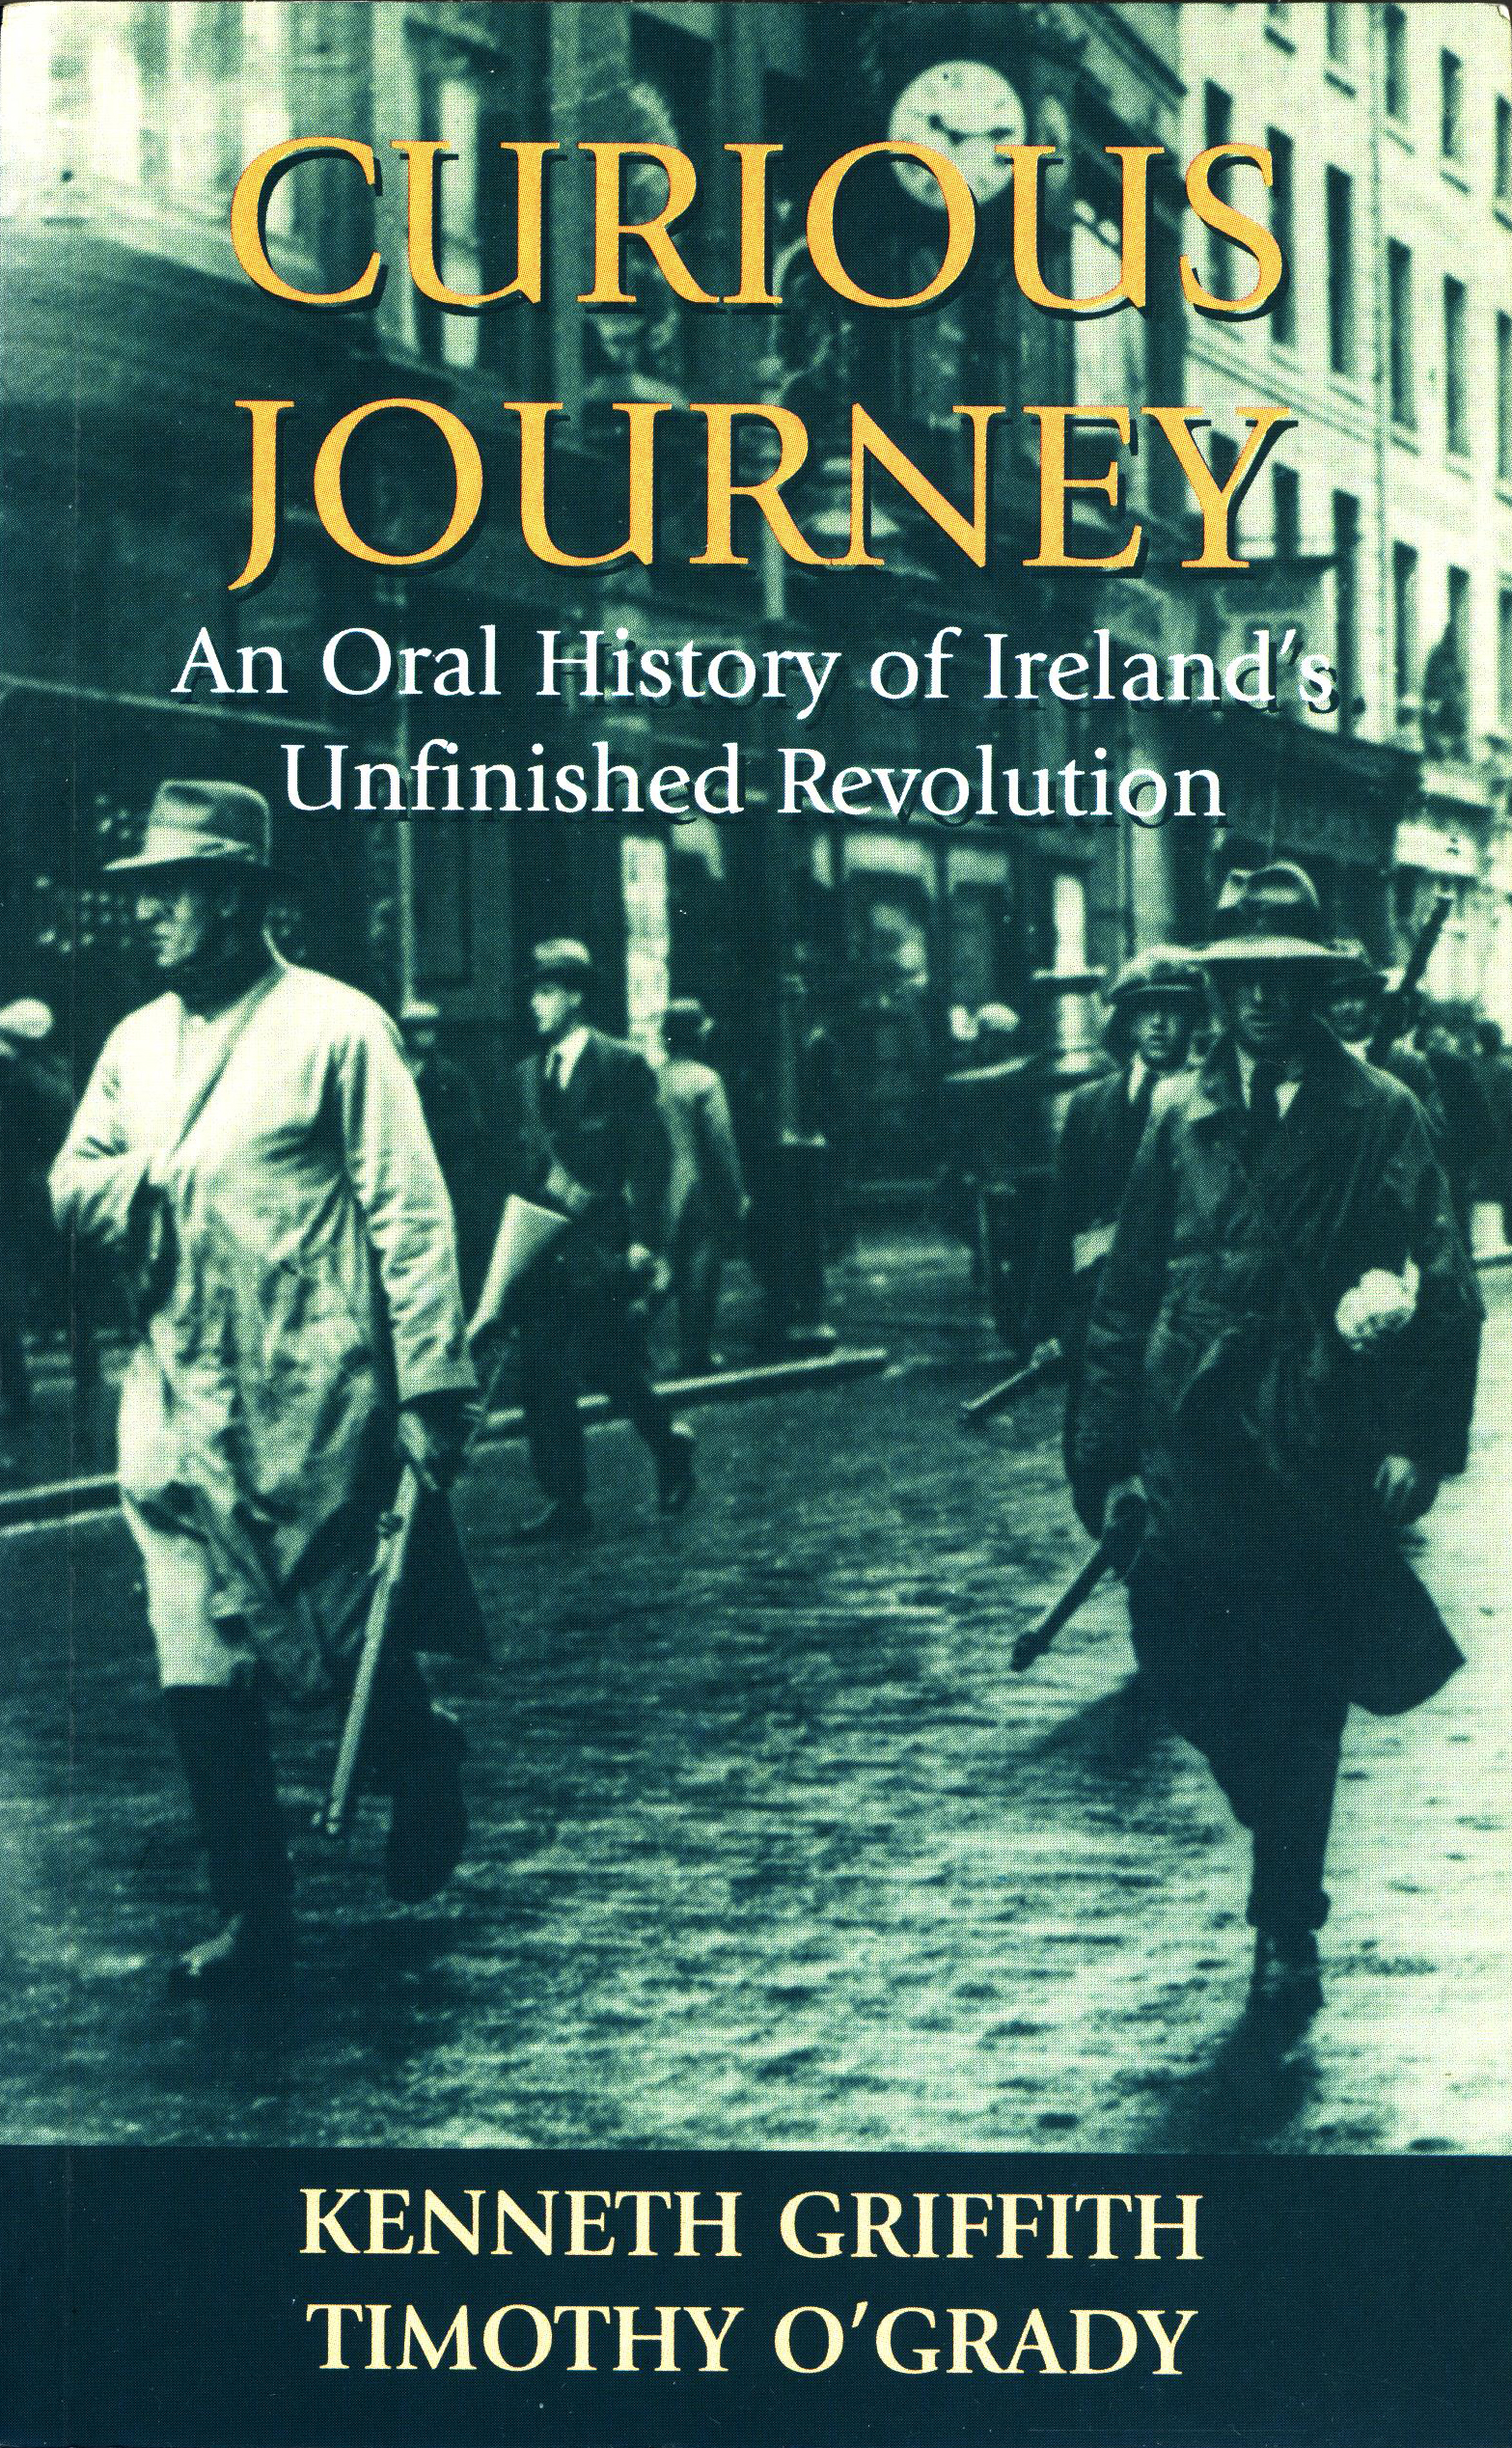 Kenneth Griffith, Timothhy O'Grady: Curious Journey - An Oral History of Ireland's Unfinished Revolution